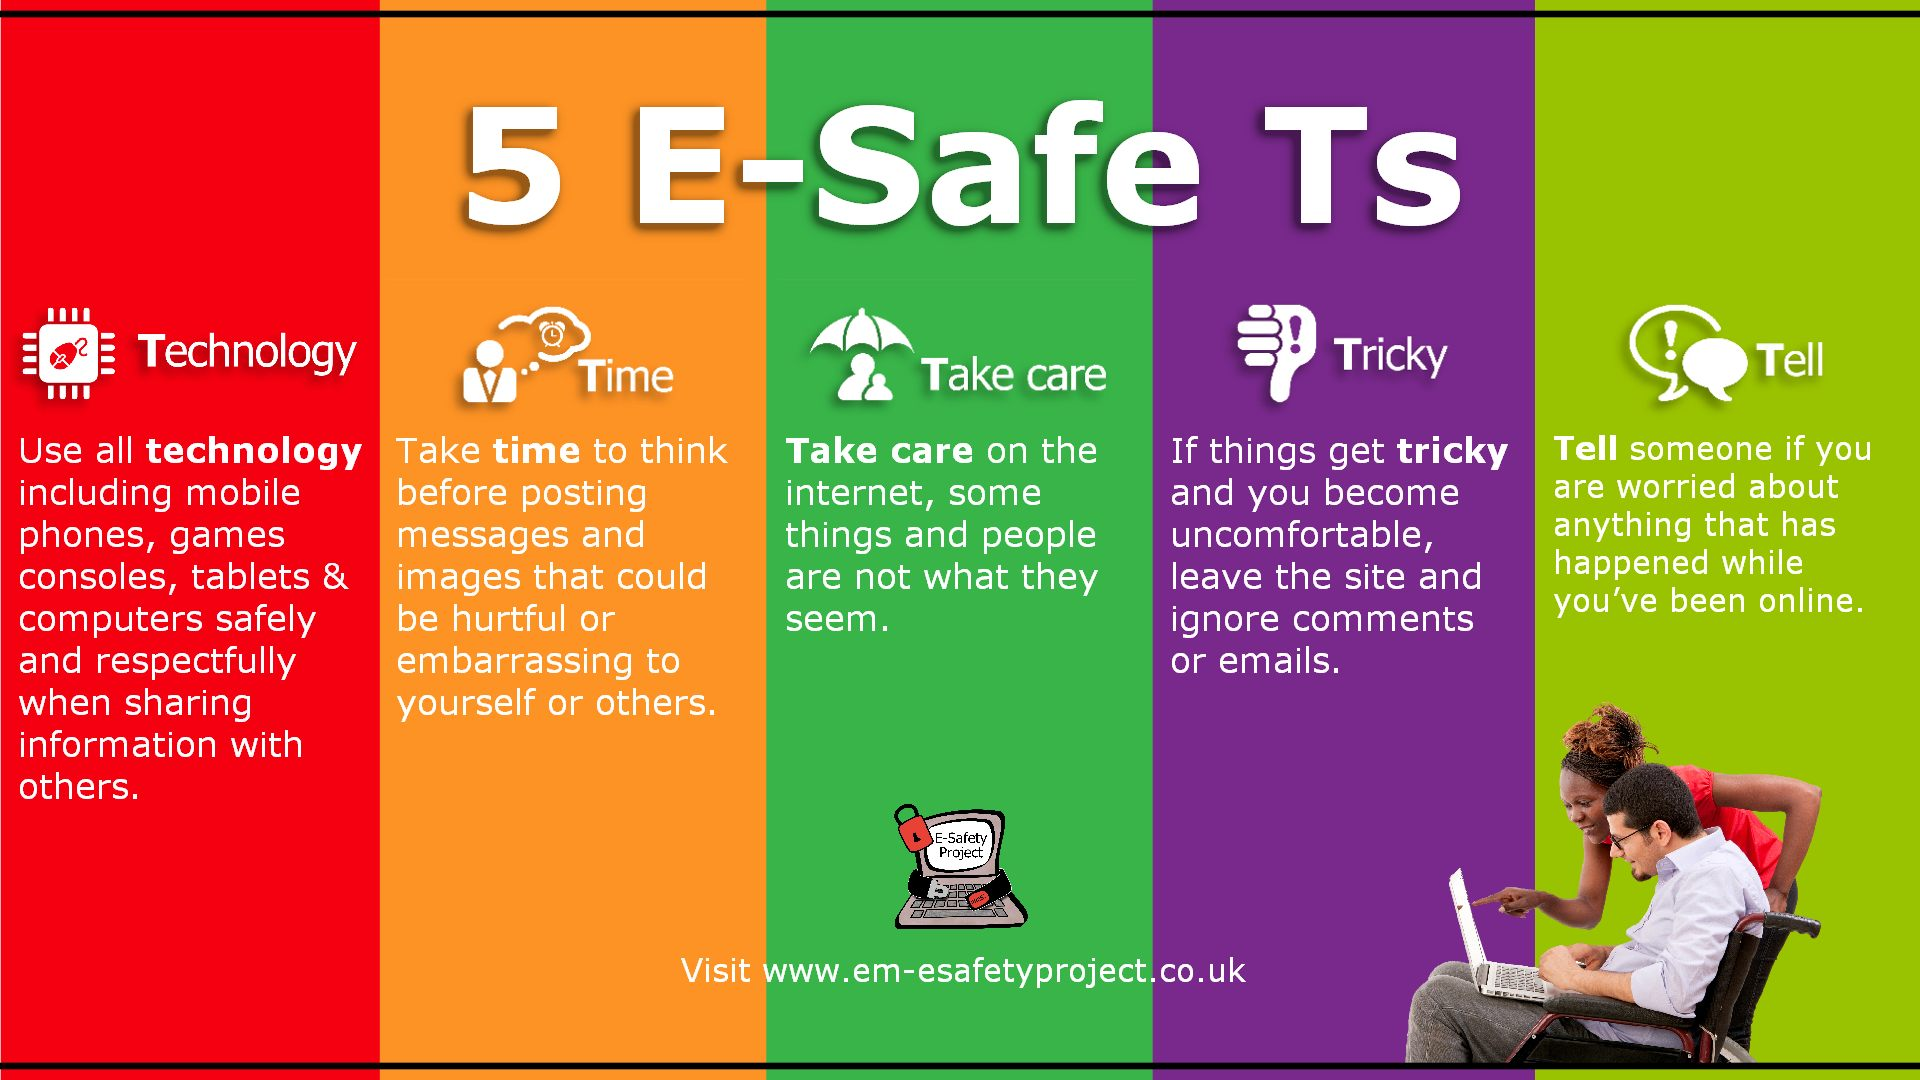 Safety Project   Using Technology Working Together Keeping Safe 1920x1080